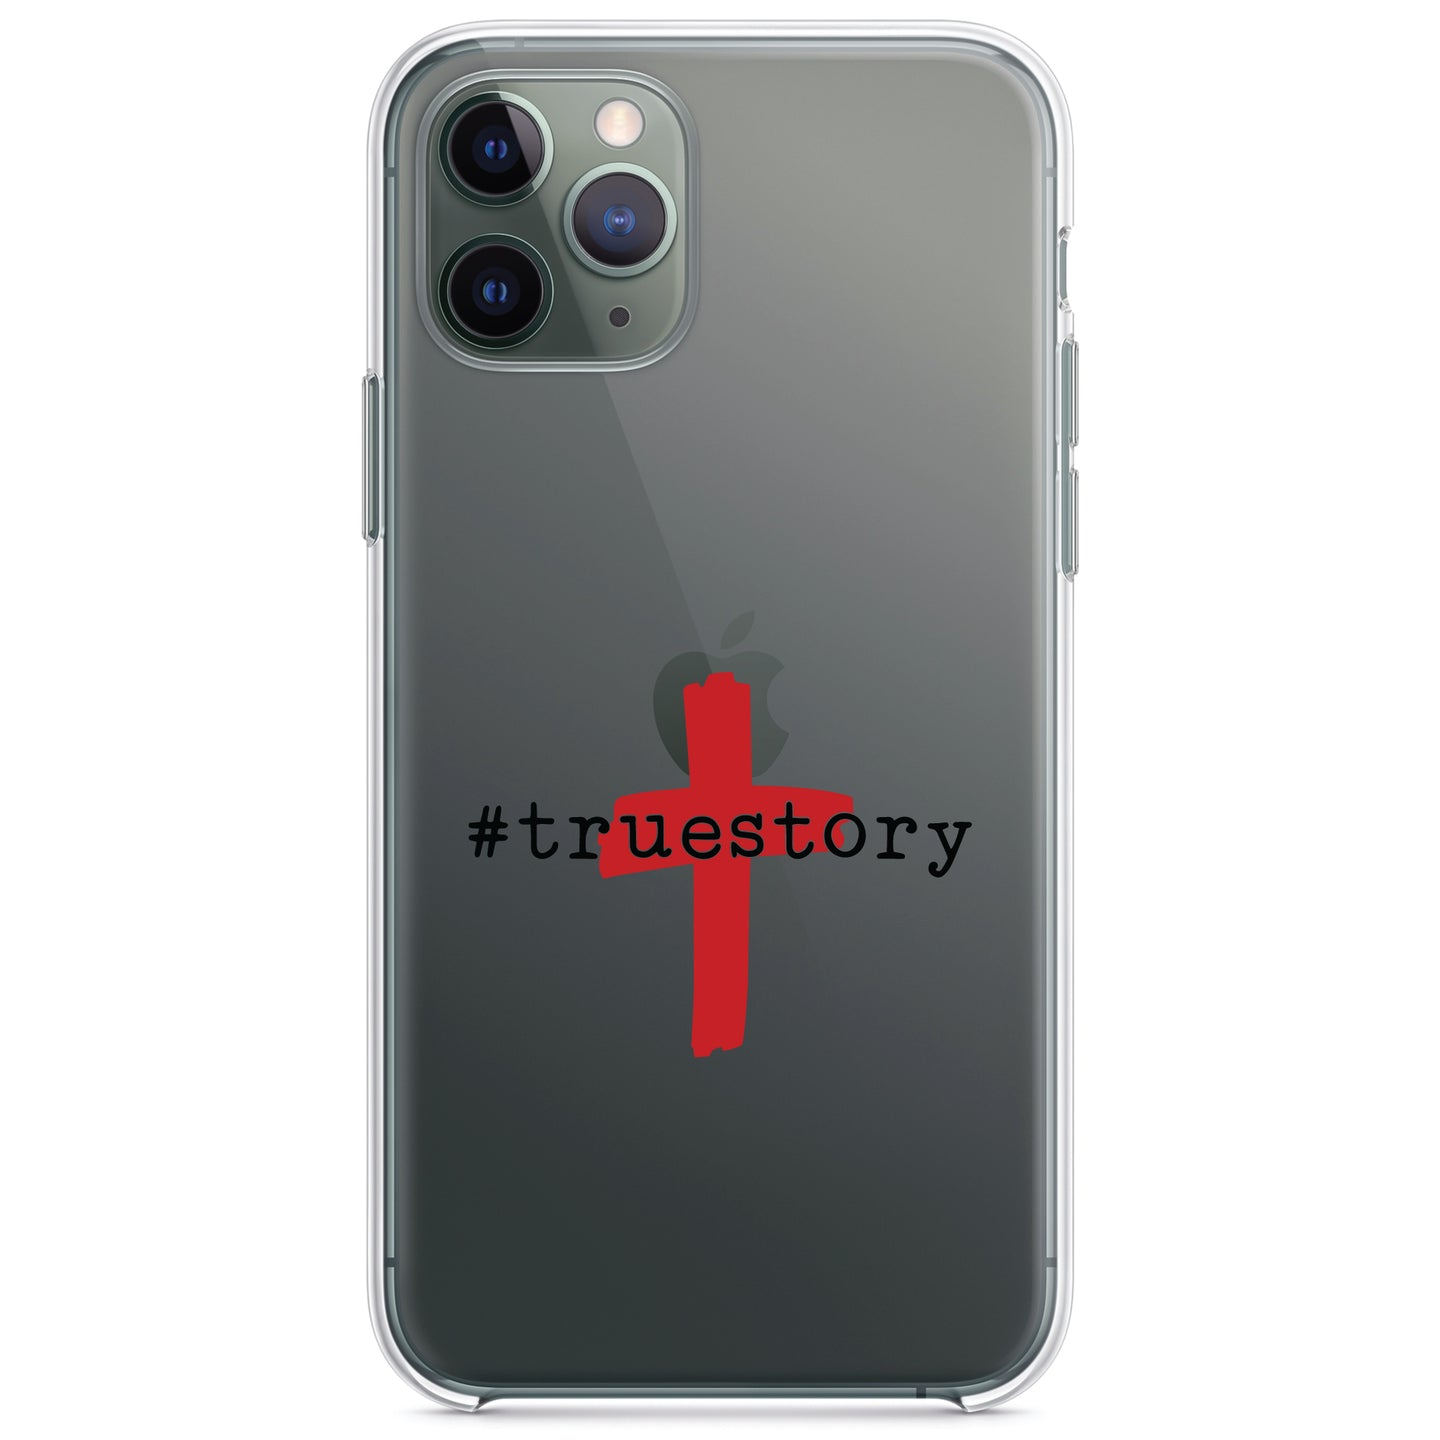 DistinctInk® Clear Shockproof Hybrid Case for Apple iPhone / Samsung Galaxy / Google Pixel - #truestory - Cross - Christian - Red